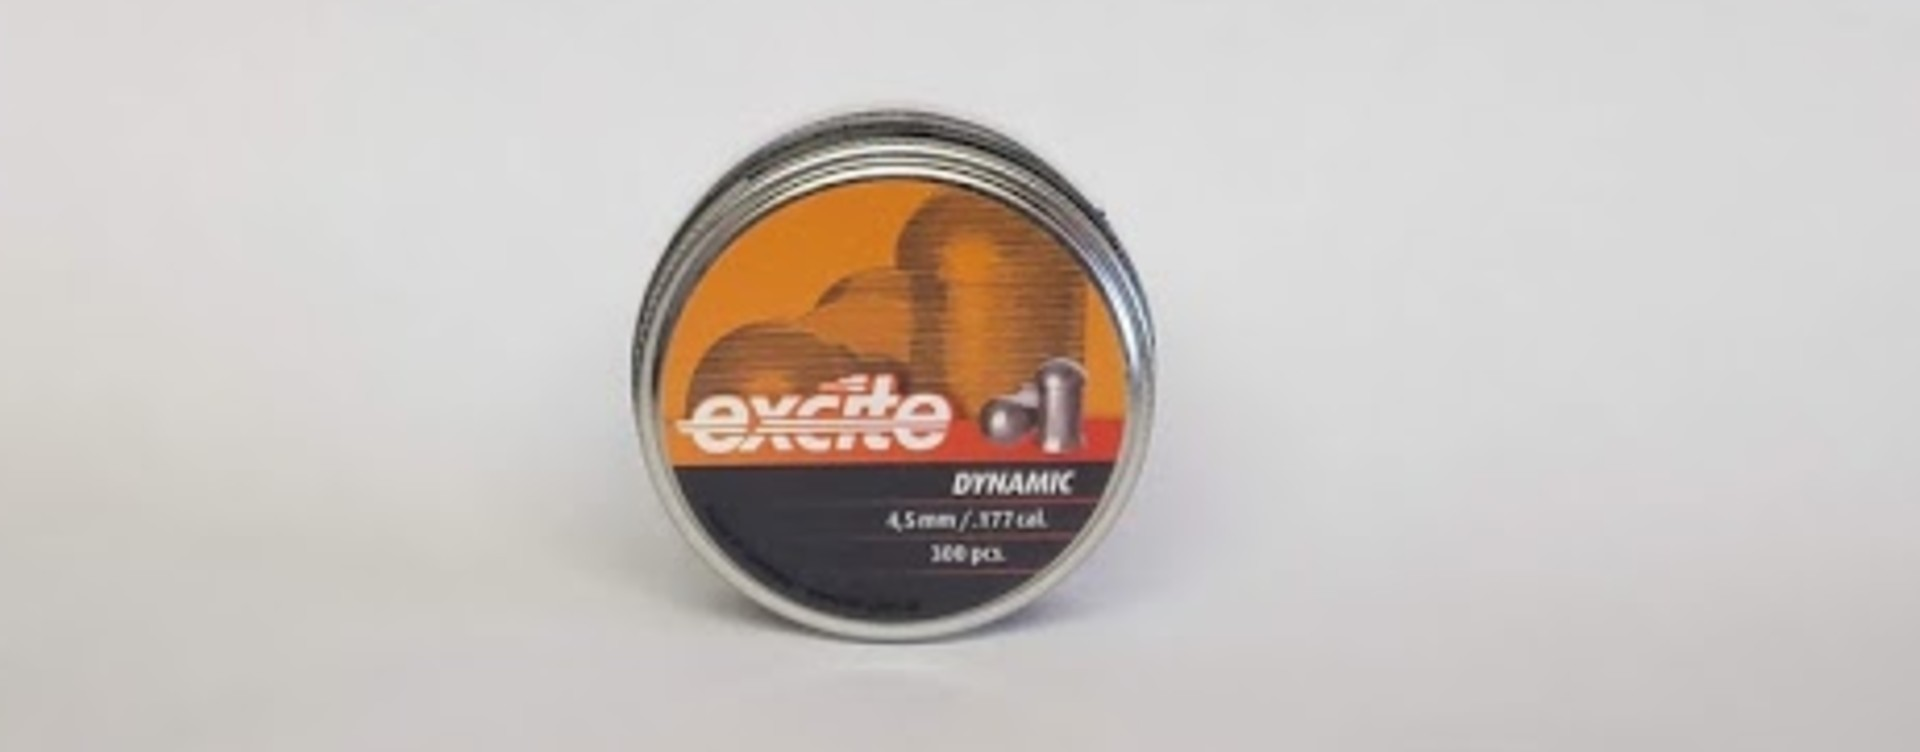 Excite Dynamic